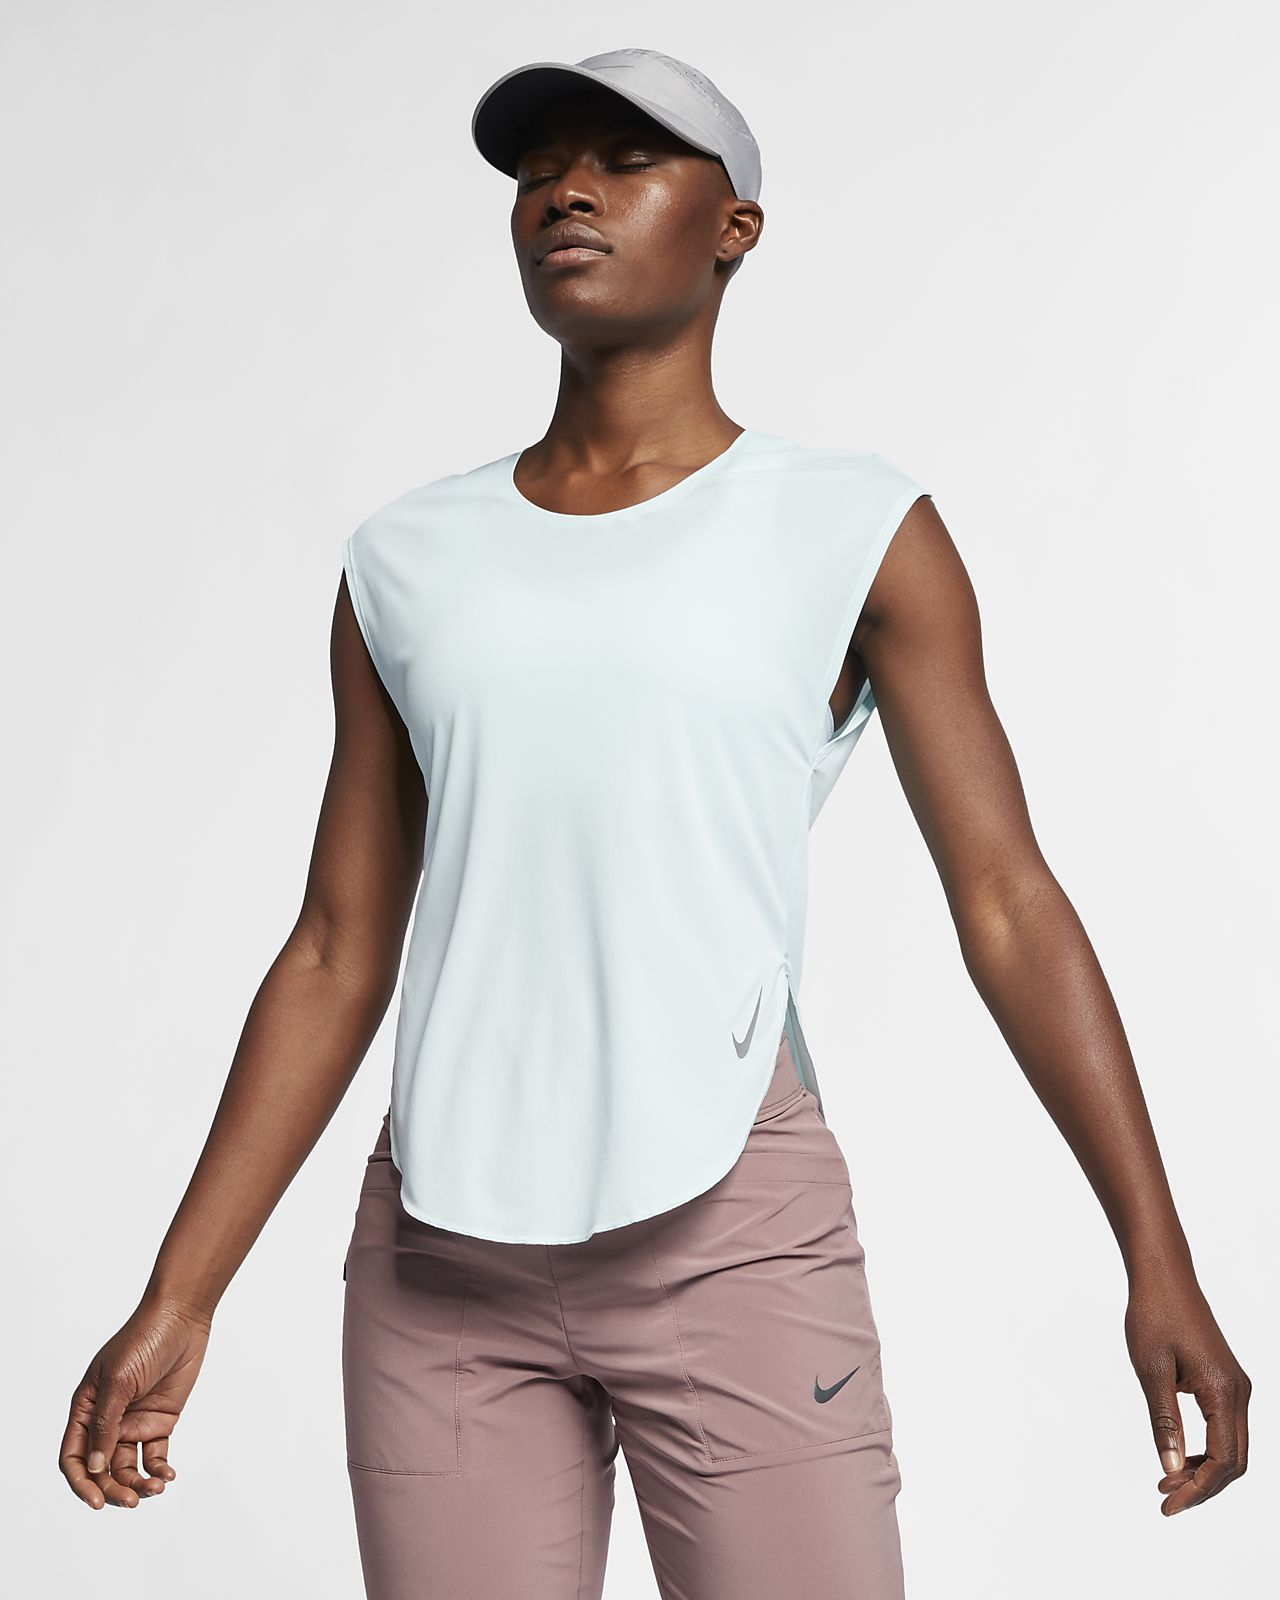 Nike City Sleek Women's Running Top